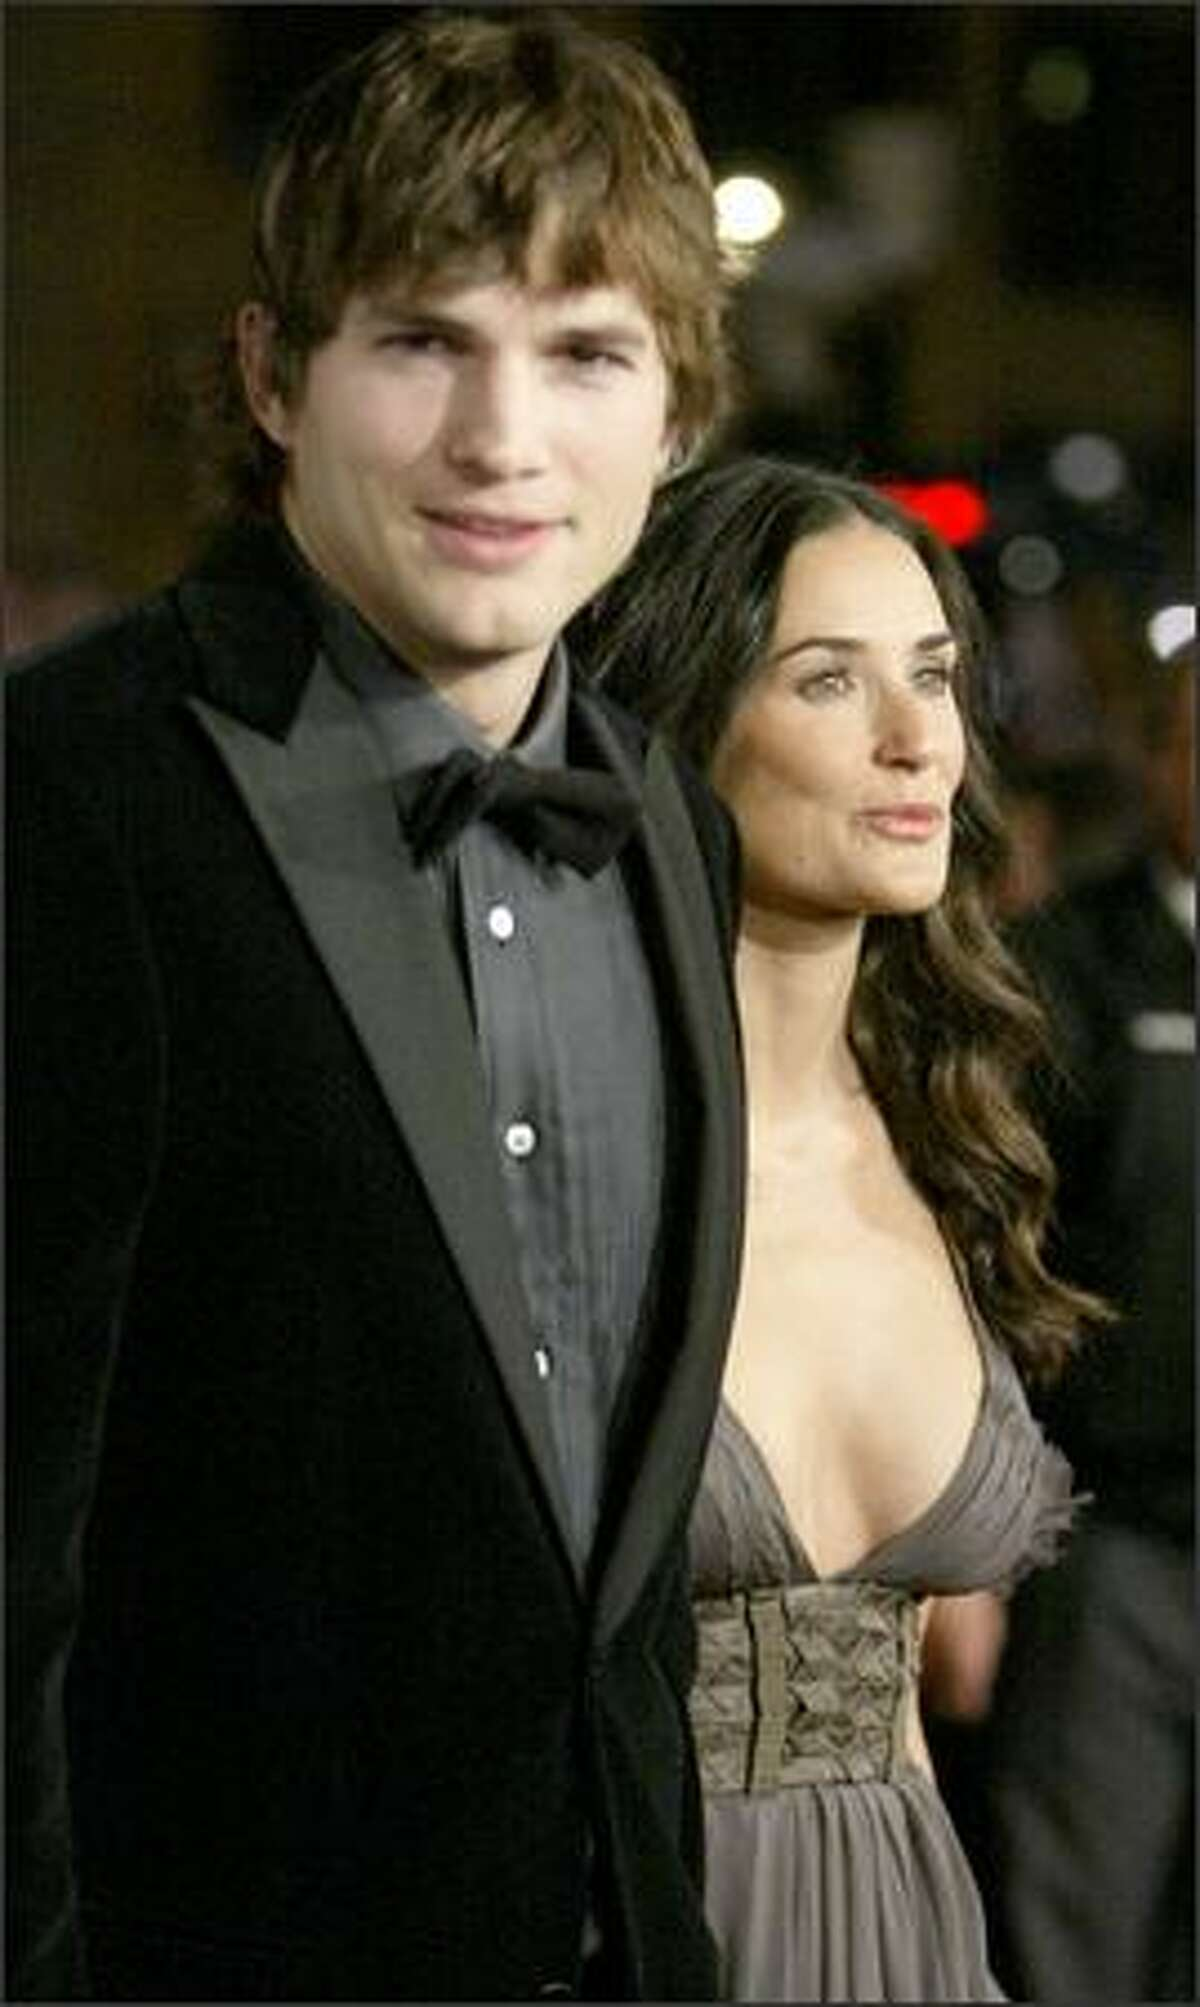 """Ashton Kutcher, left, and Demi Moore, right, arrive for the premiere of the movie """"Bobby"""" during the opening night of AFI Fest 2006, Wednesday in Los Angeles. (AP Photo/Danny Moloshok)"""